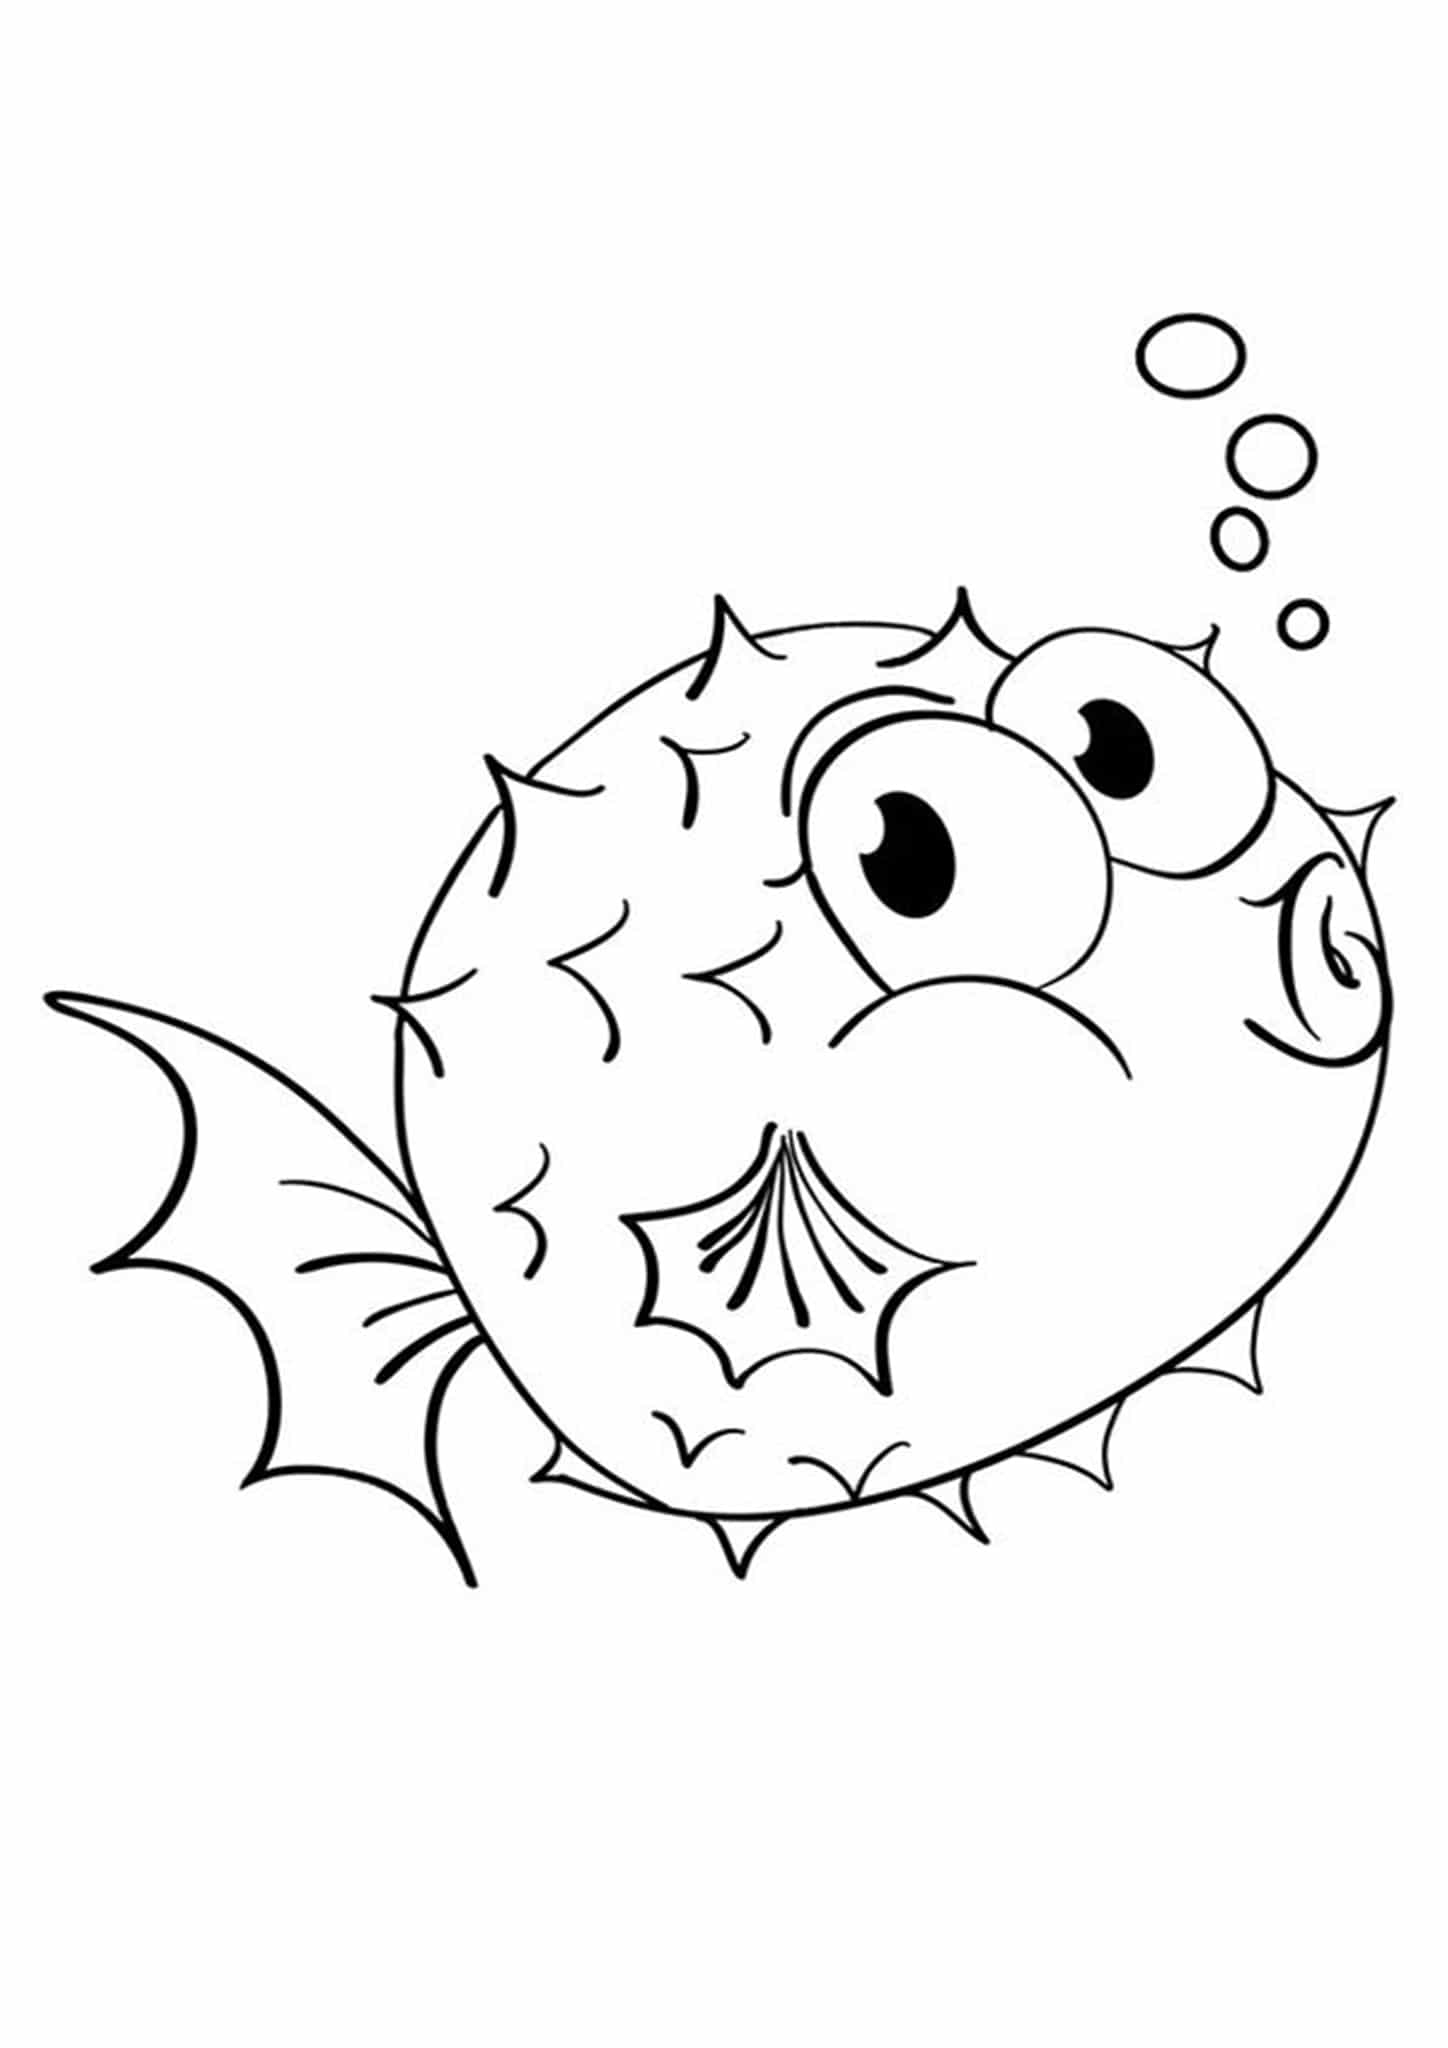 for coloring really hard detailed coloring pages coloring home coloring for